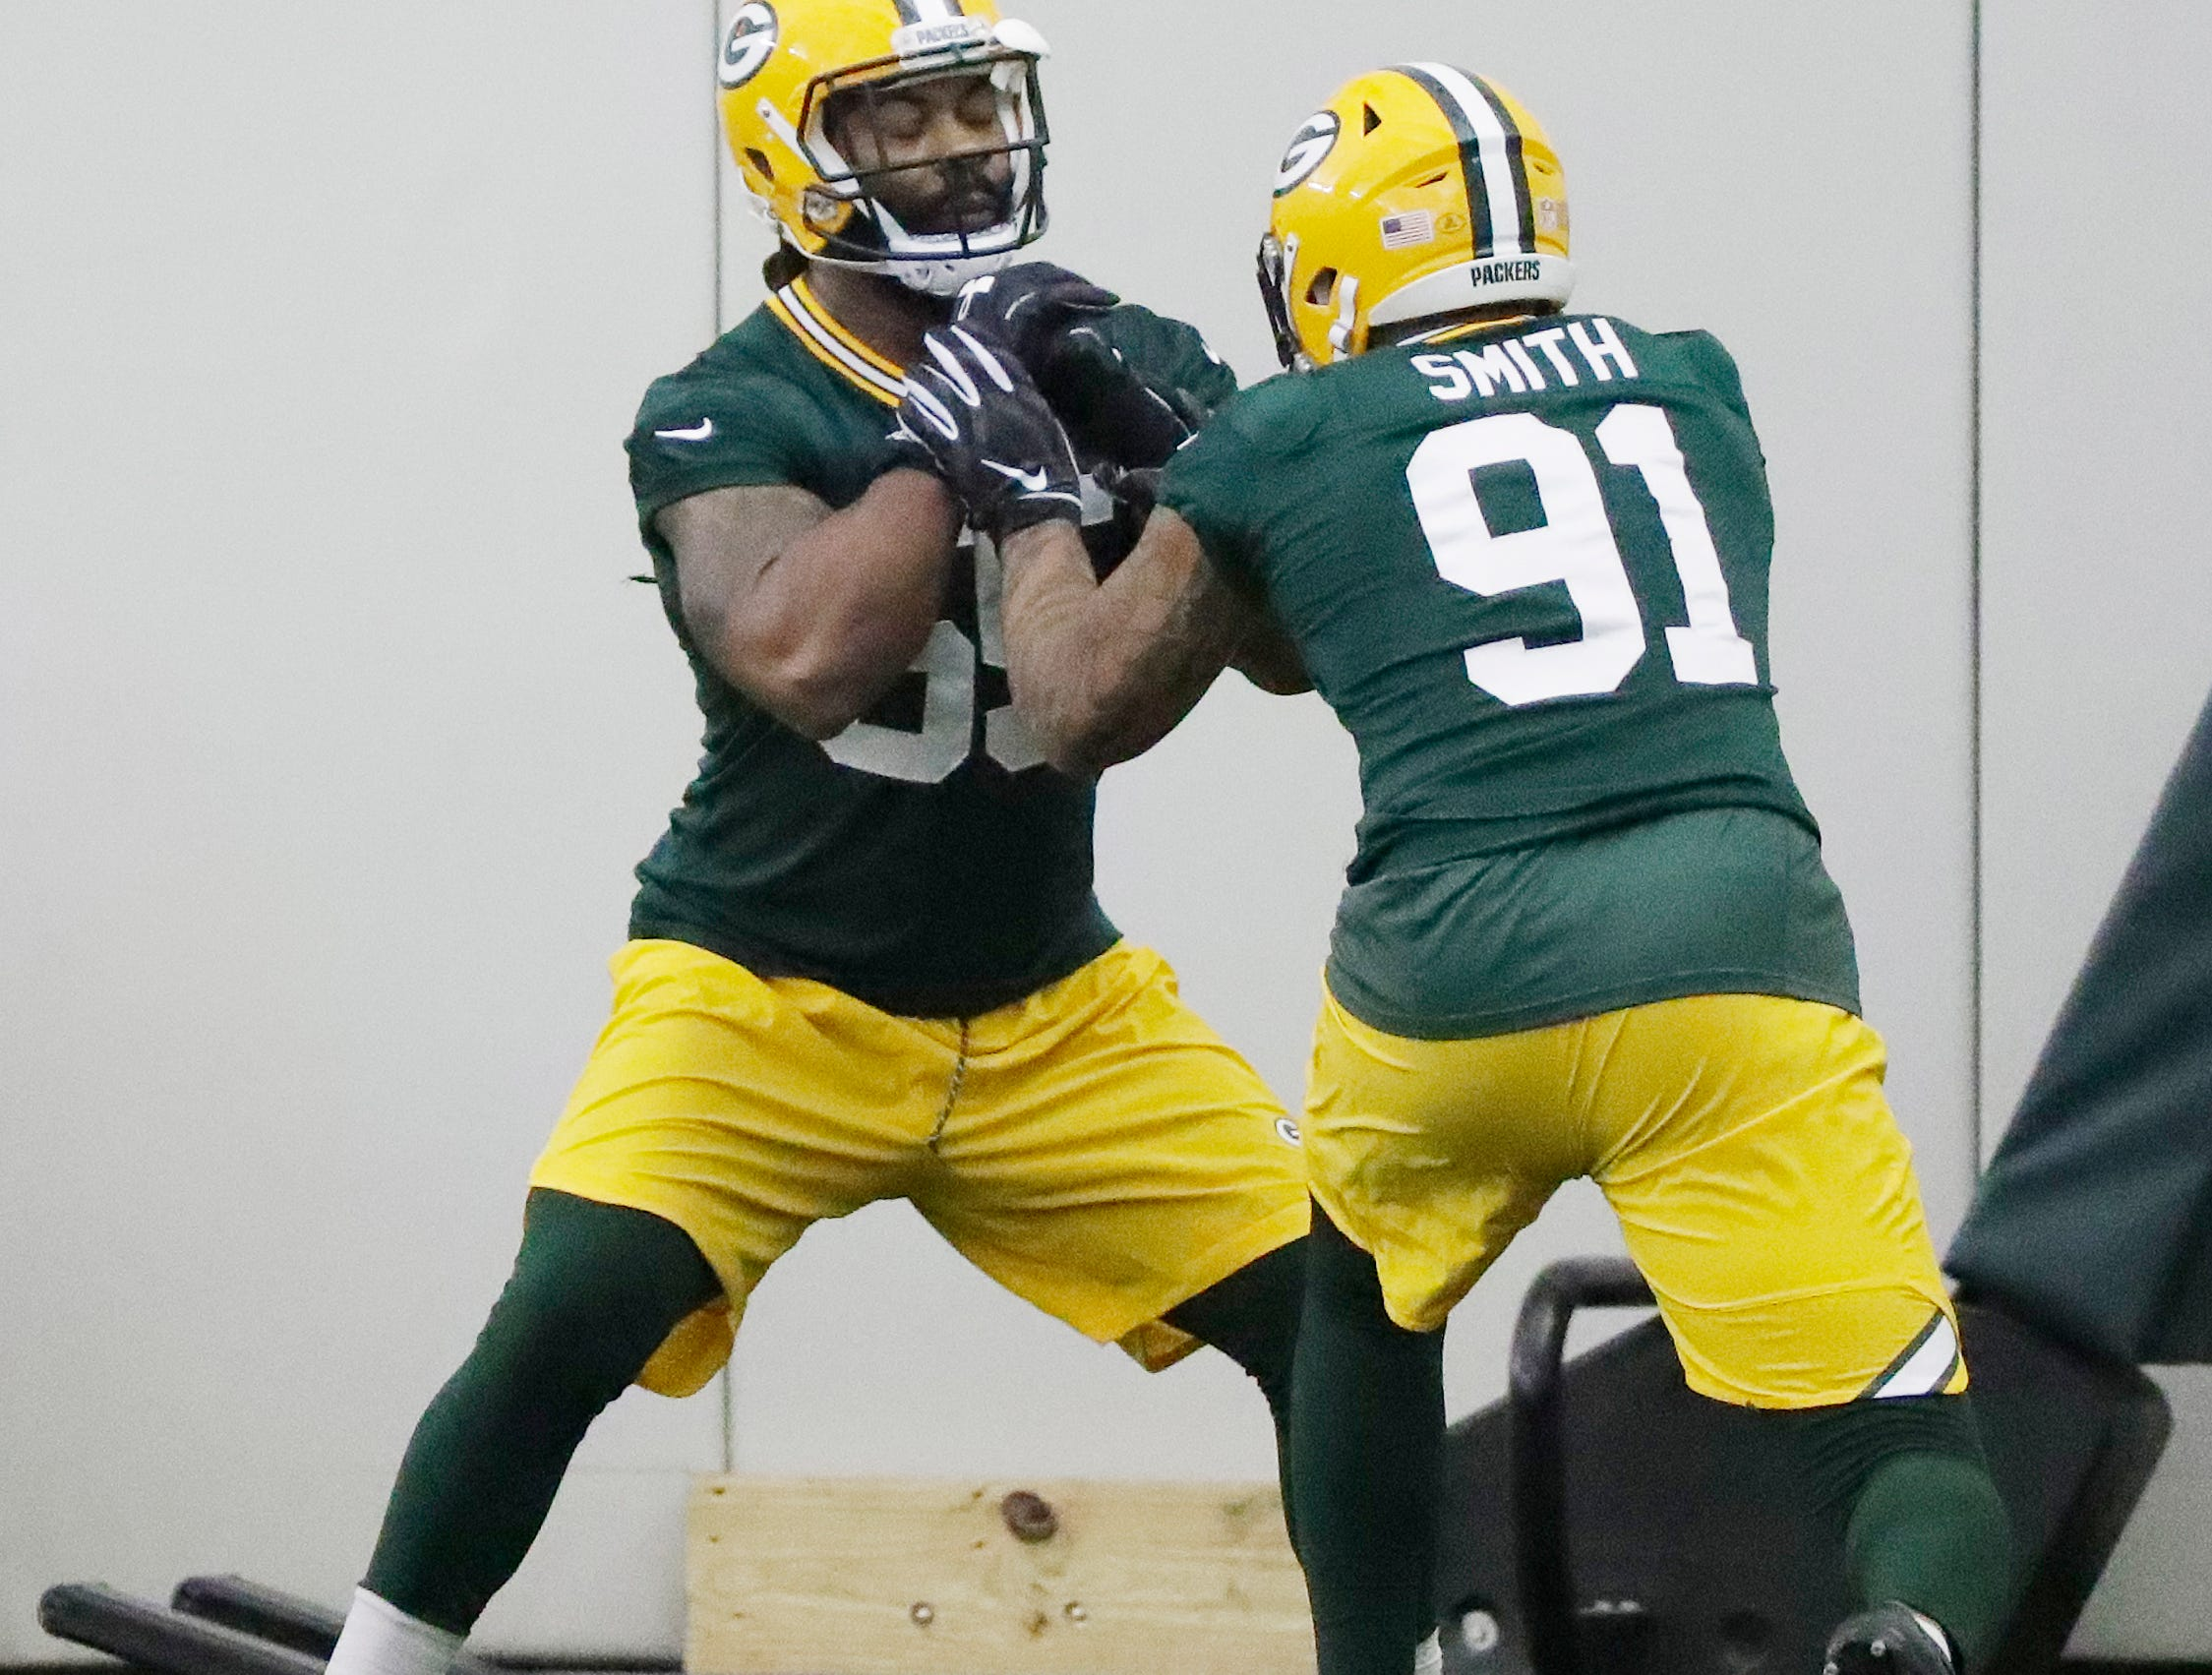 Green Bay Packers linebacker Za'Darius Smith (55) and linebacker Preston Smith (91) during a team practice at the Don Hutson Center on Wednesday, April 24, 2019 in Ashwaubenon, Wis.